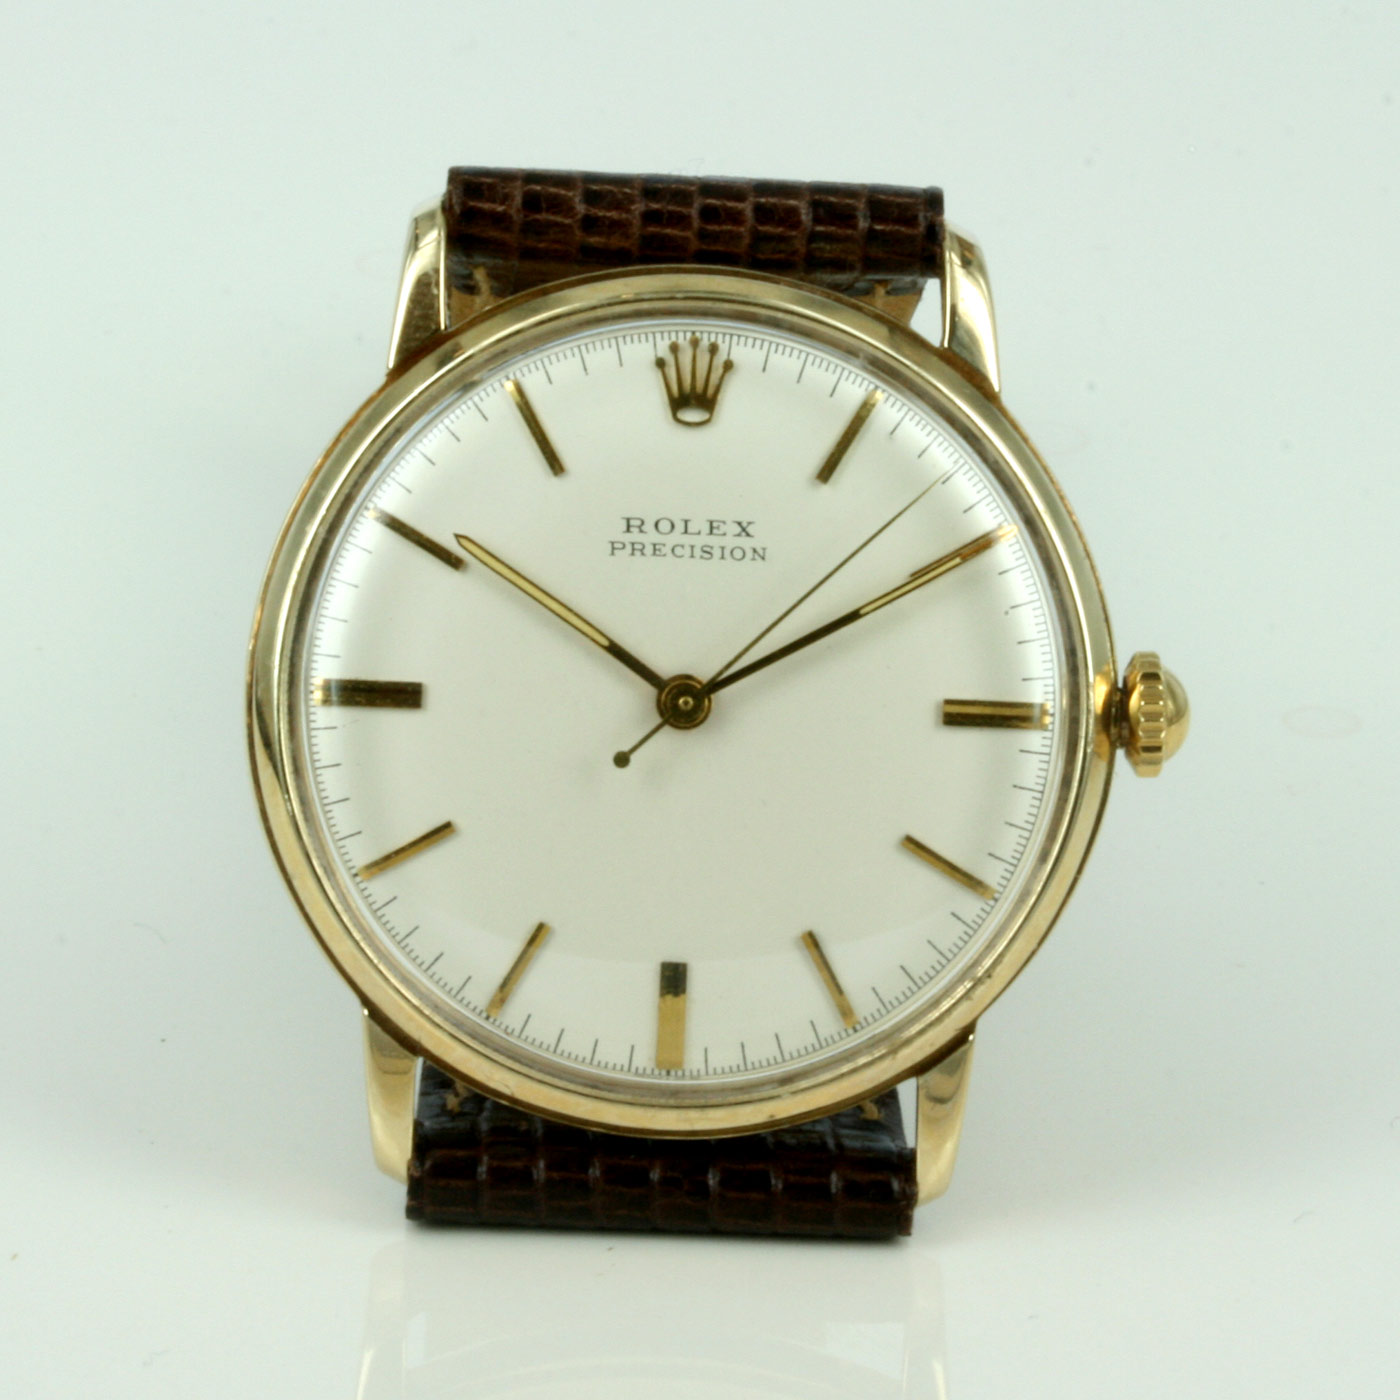 Vintage Rolex Watches Buy Vintage Rolex Presion Watch In Gold. Sold Items, Sold